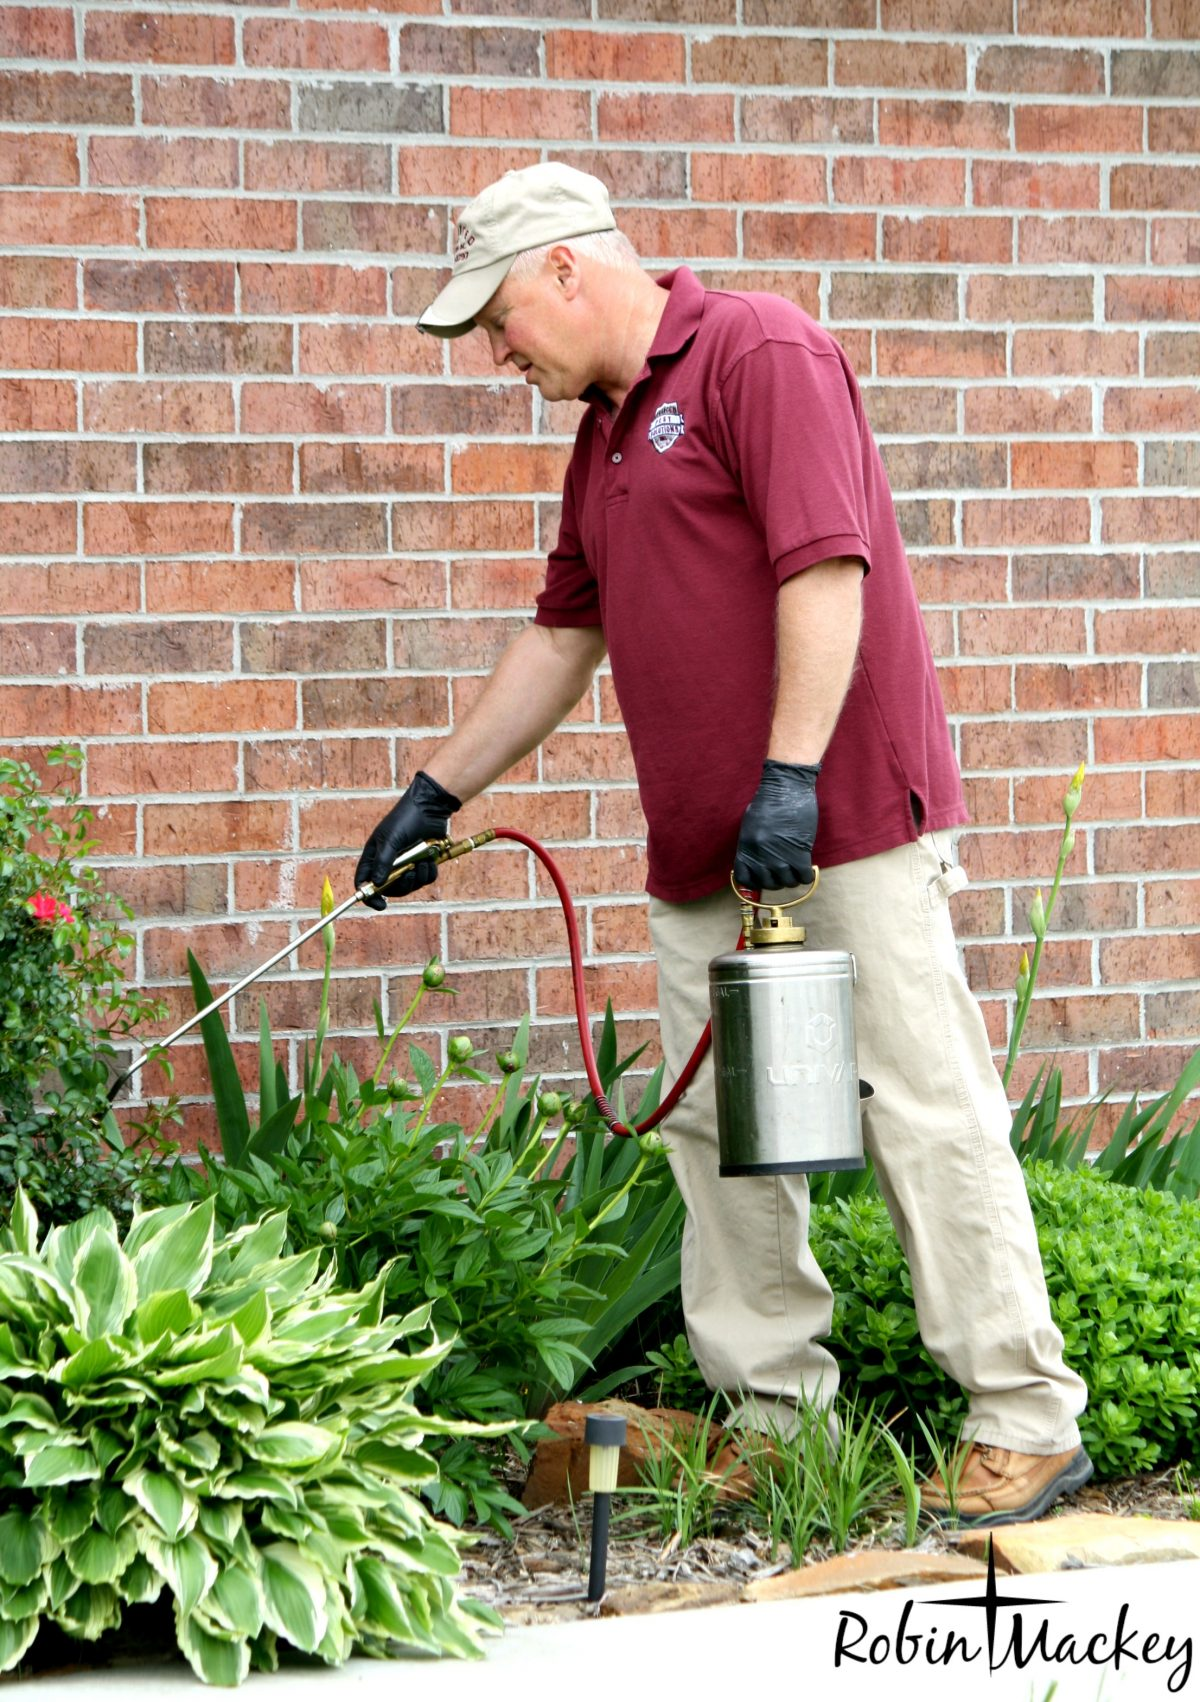 Let Advanced Pest Solutions Solve Your Pest Problems